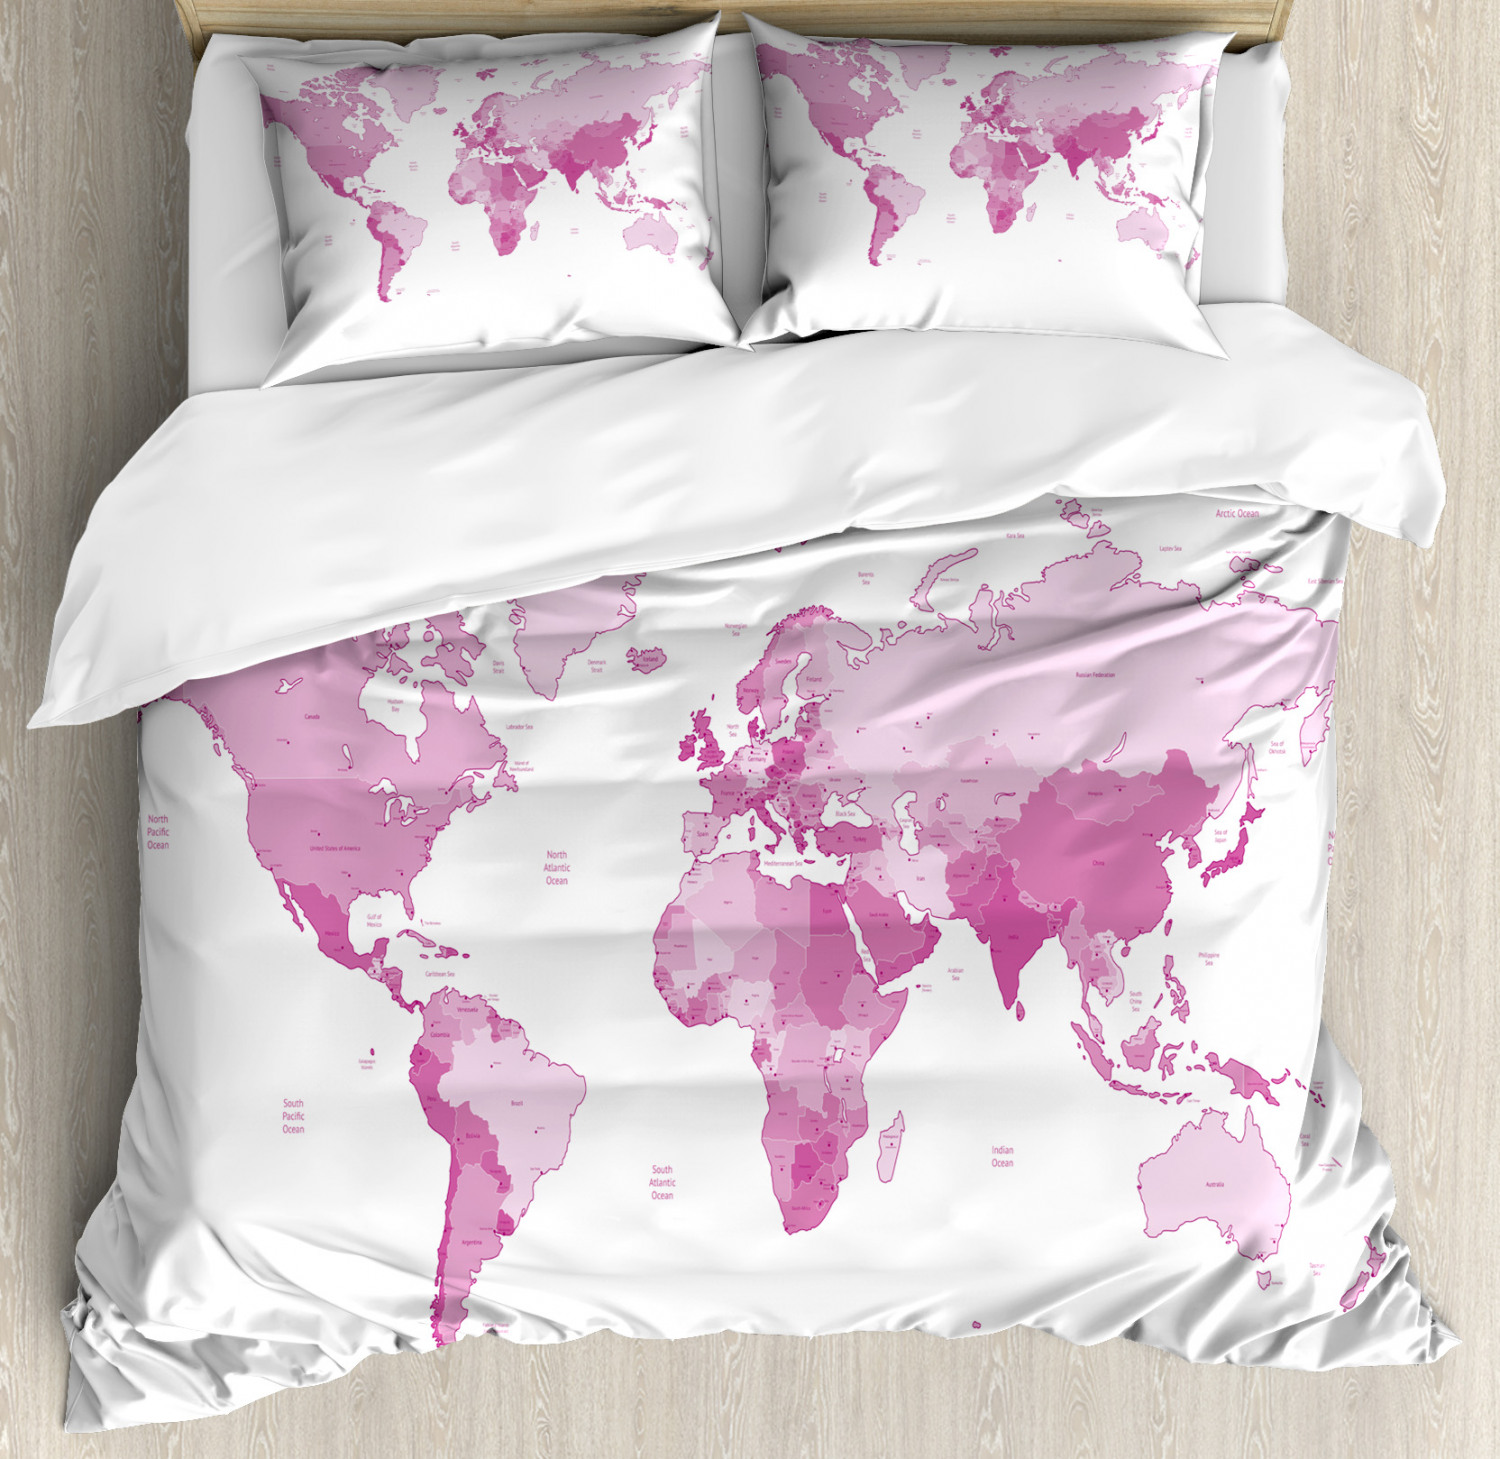 Pale Pink Duvet Cover Set with Pillow Shams World Map Continents Print